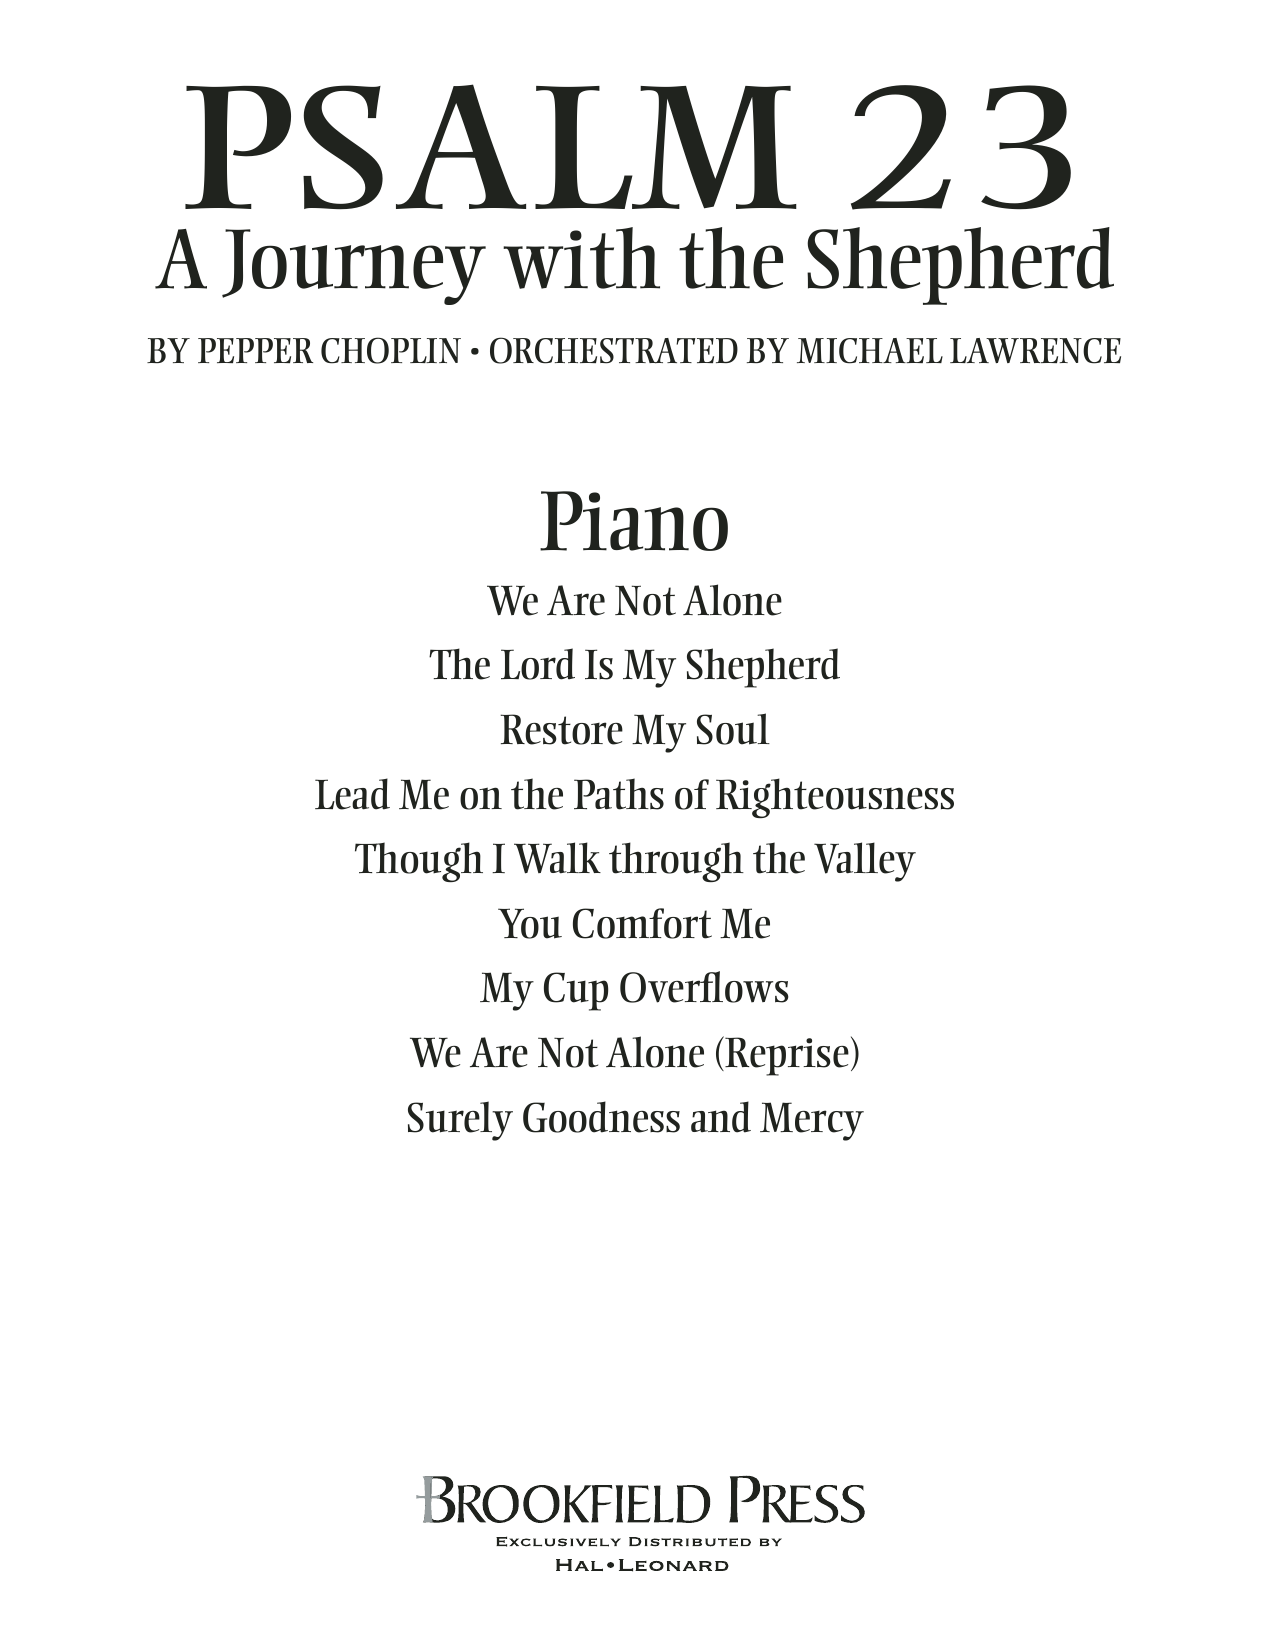 Psalm 23 - A Journey With The Shepherd - Piano Sheet Music